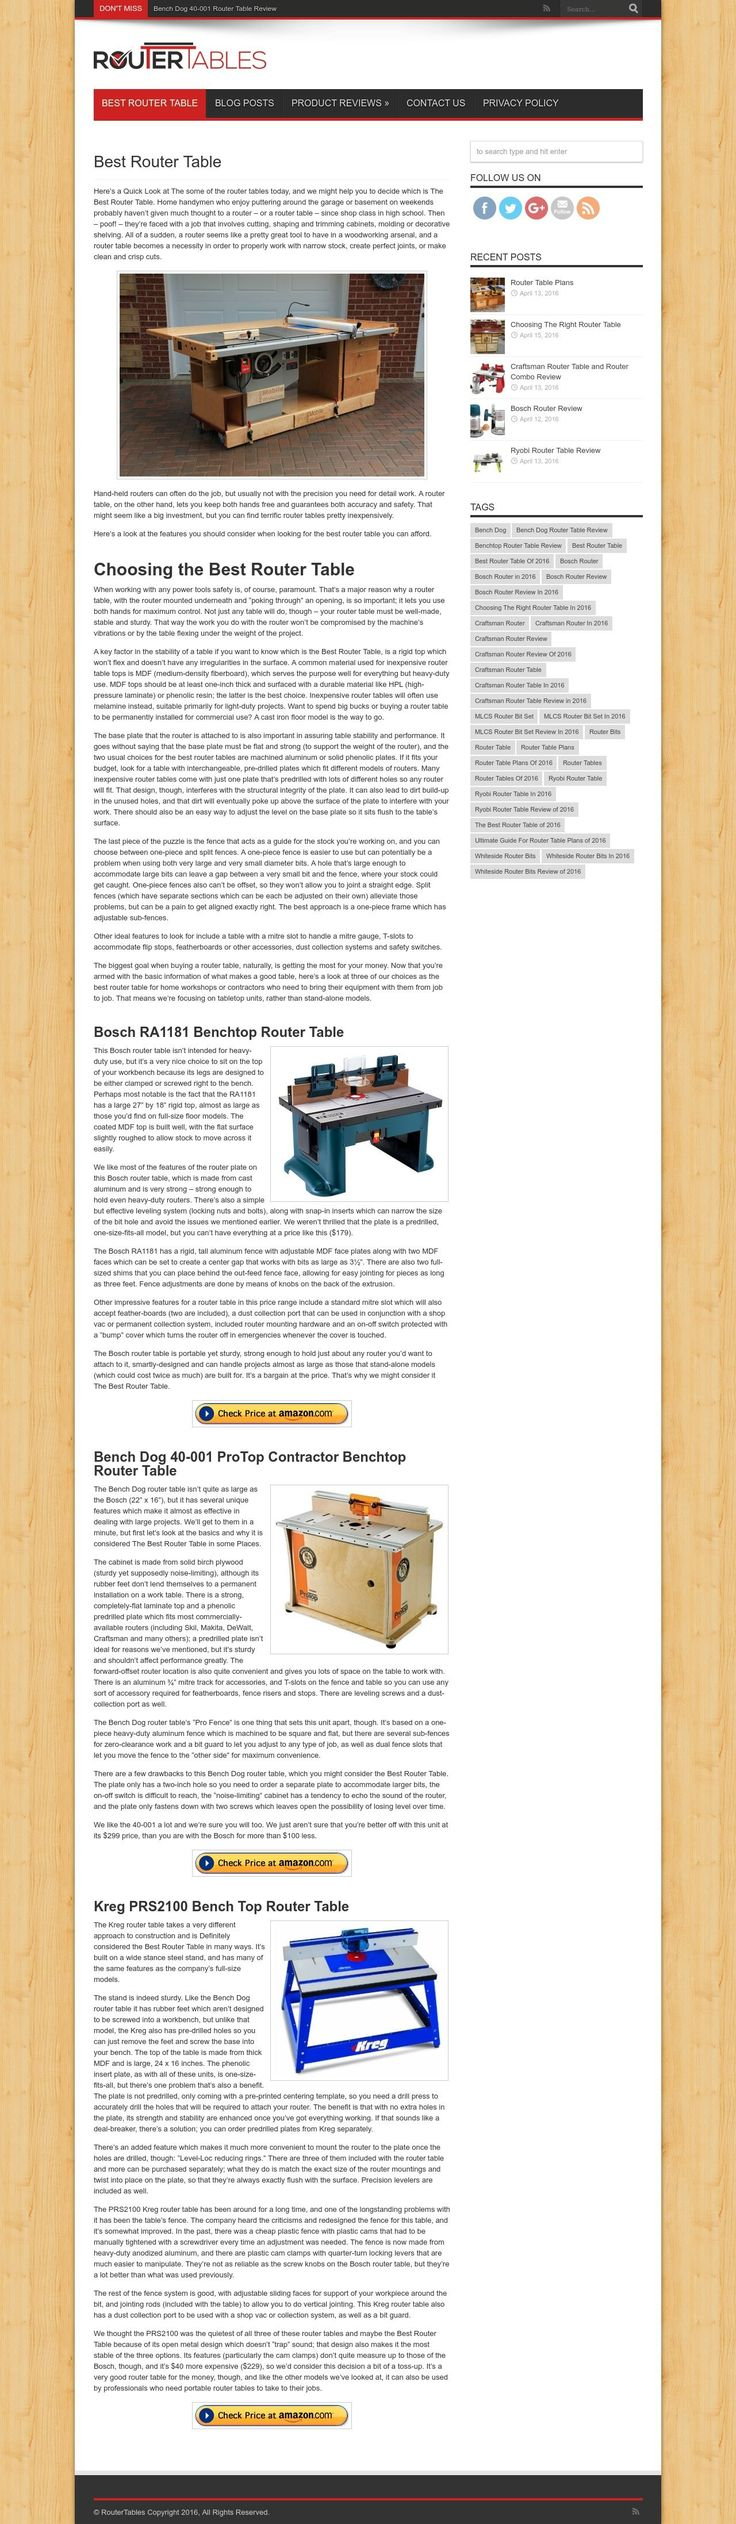 bench dog router table. best router table, is a rigid top which won\u0027t flex and doesn\u0027 bench dog table